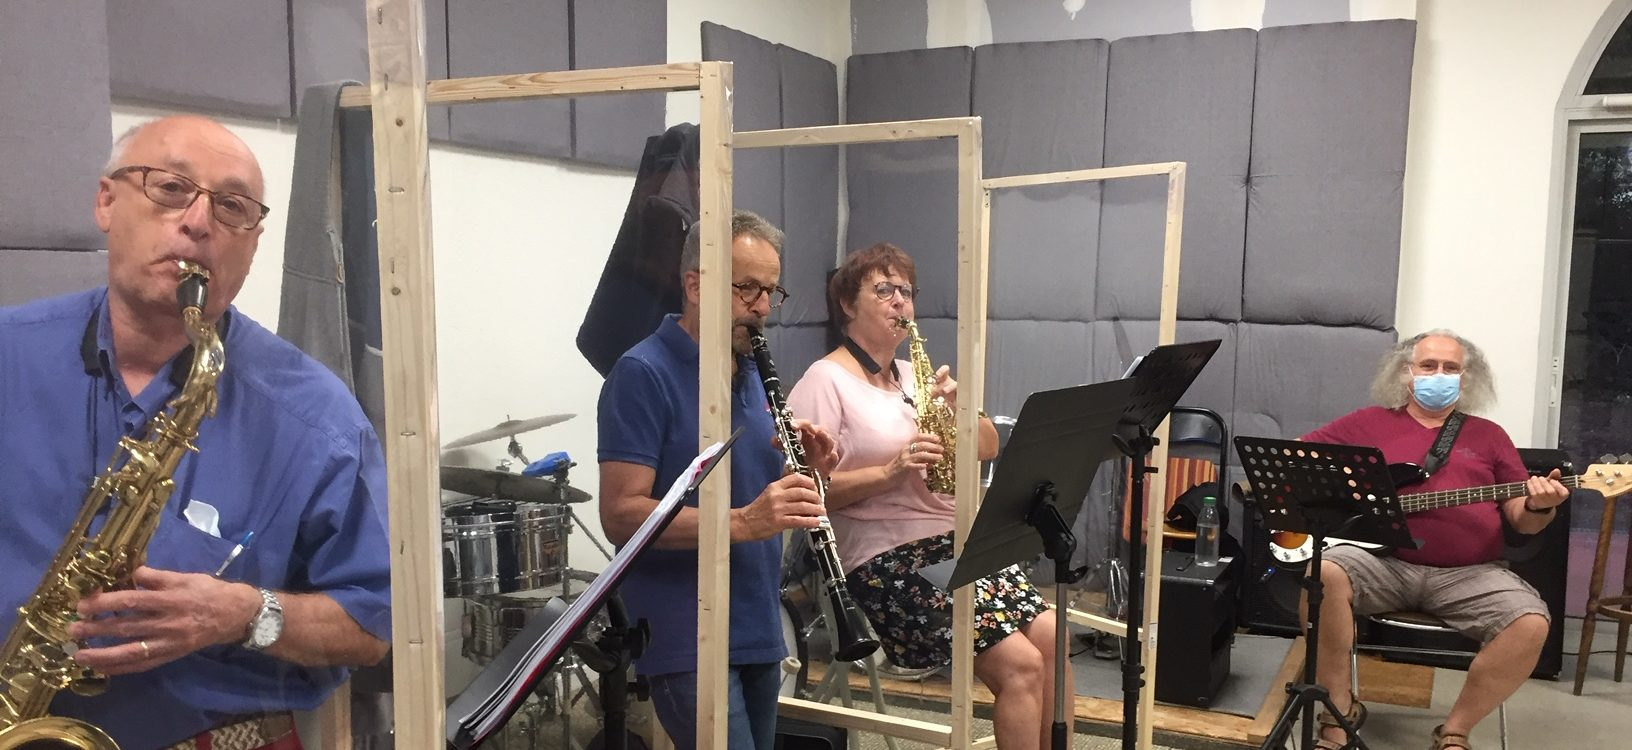 Macadanse teste nos protections COVID - Ateliers Musicaux